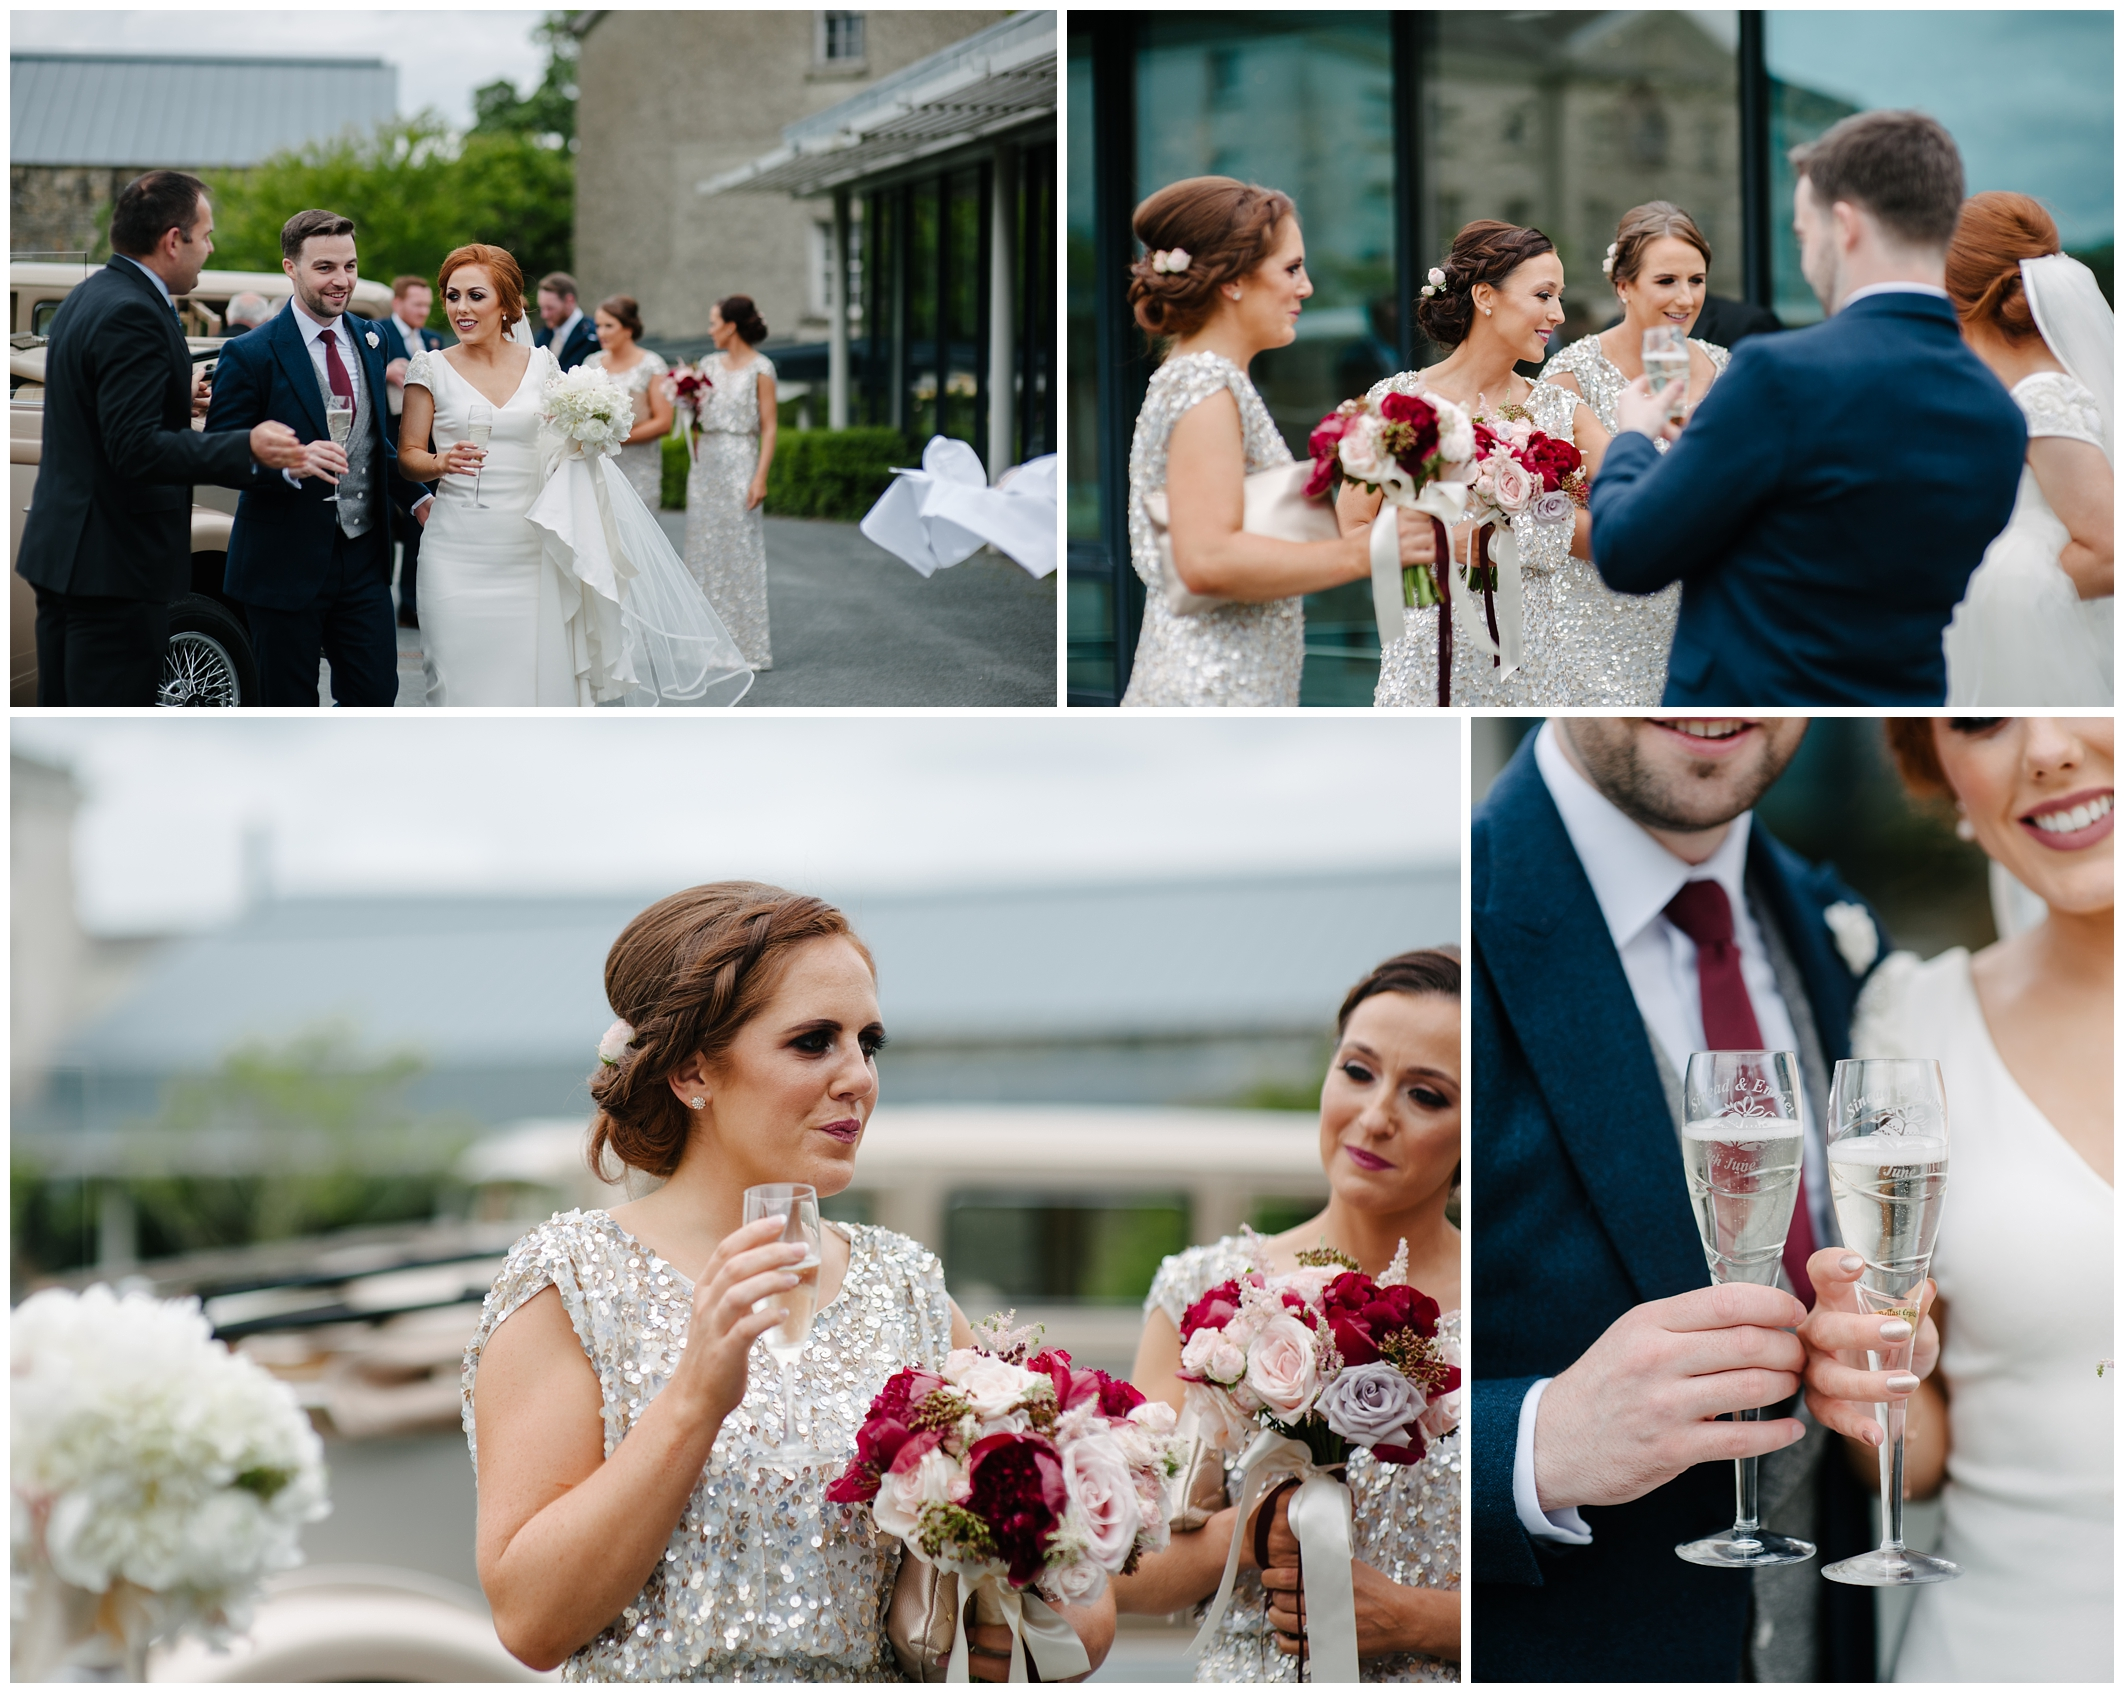 sinead_emmet_farnham_estate_wedding_jude_browne_photography_0095.jpg